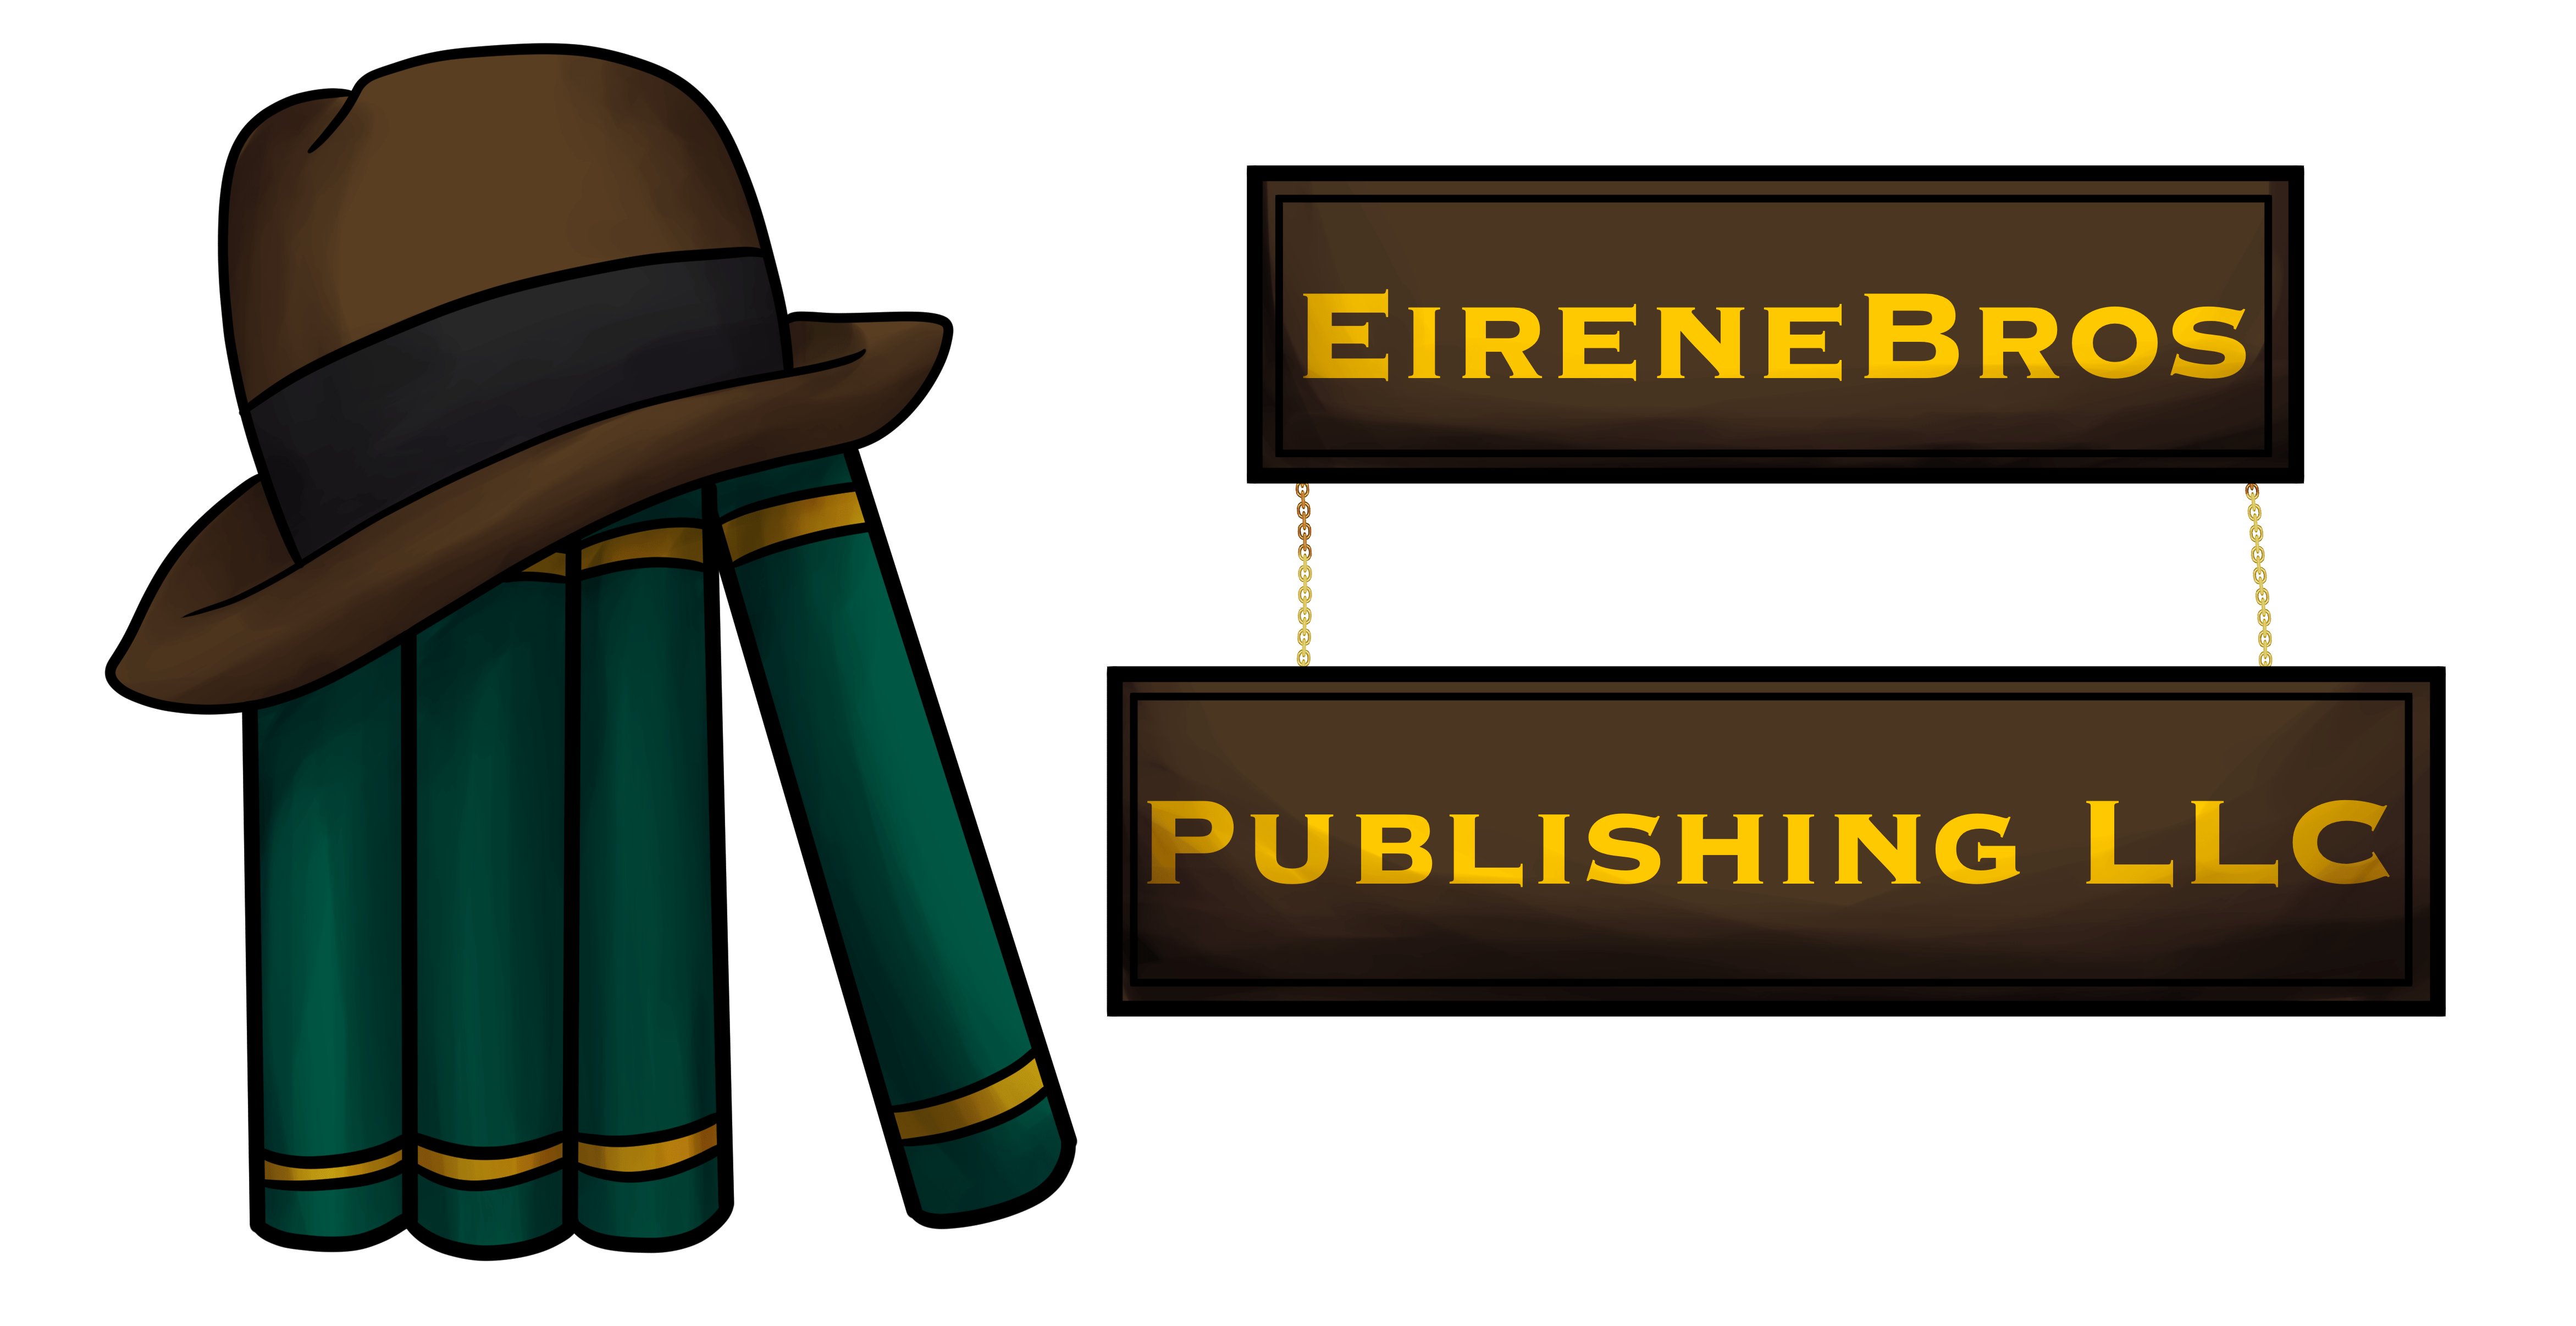 EIRENE BROS PUBLISHING